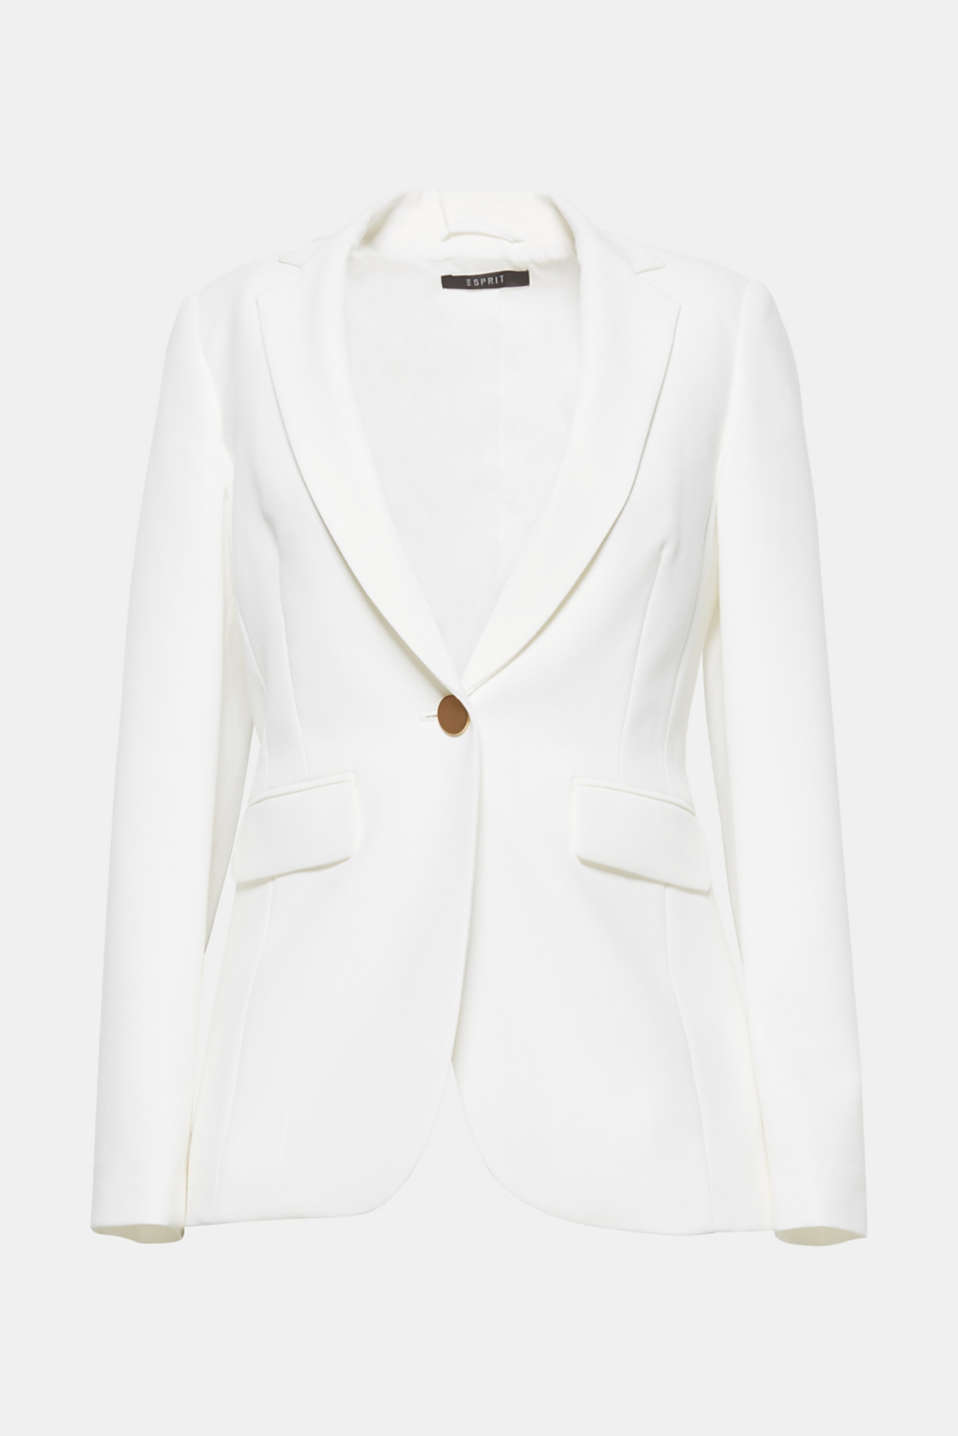 This elegant pure white blazer is perfect for the bride: flowing crêpe blazer.